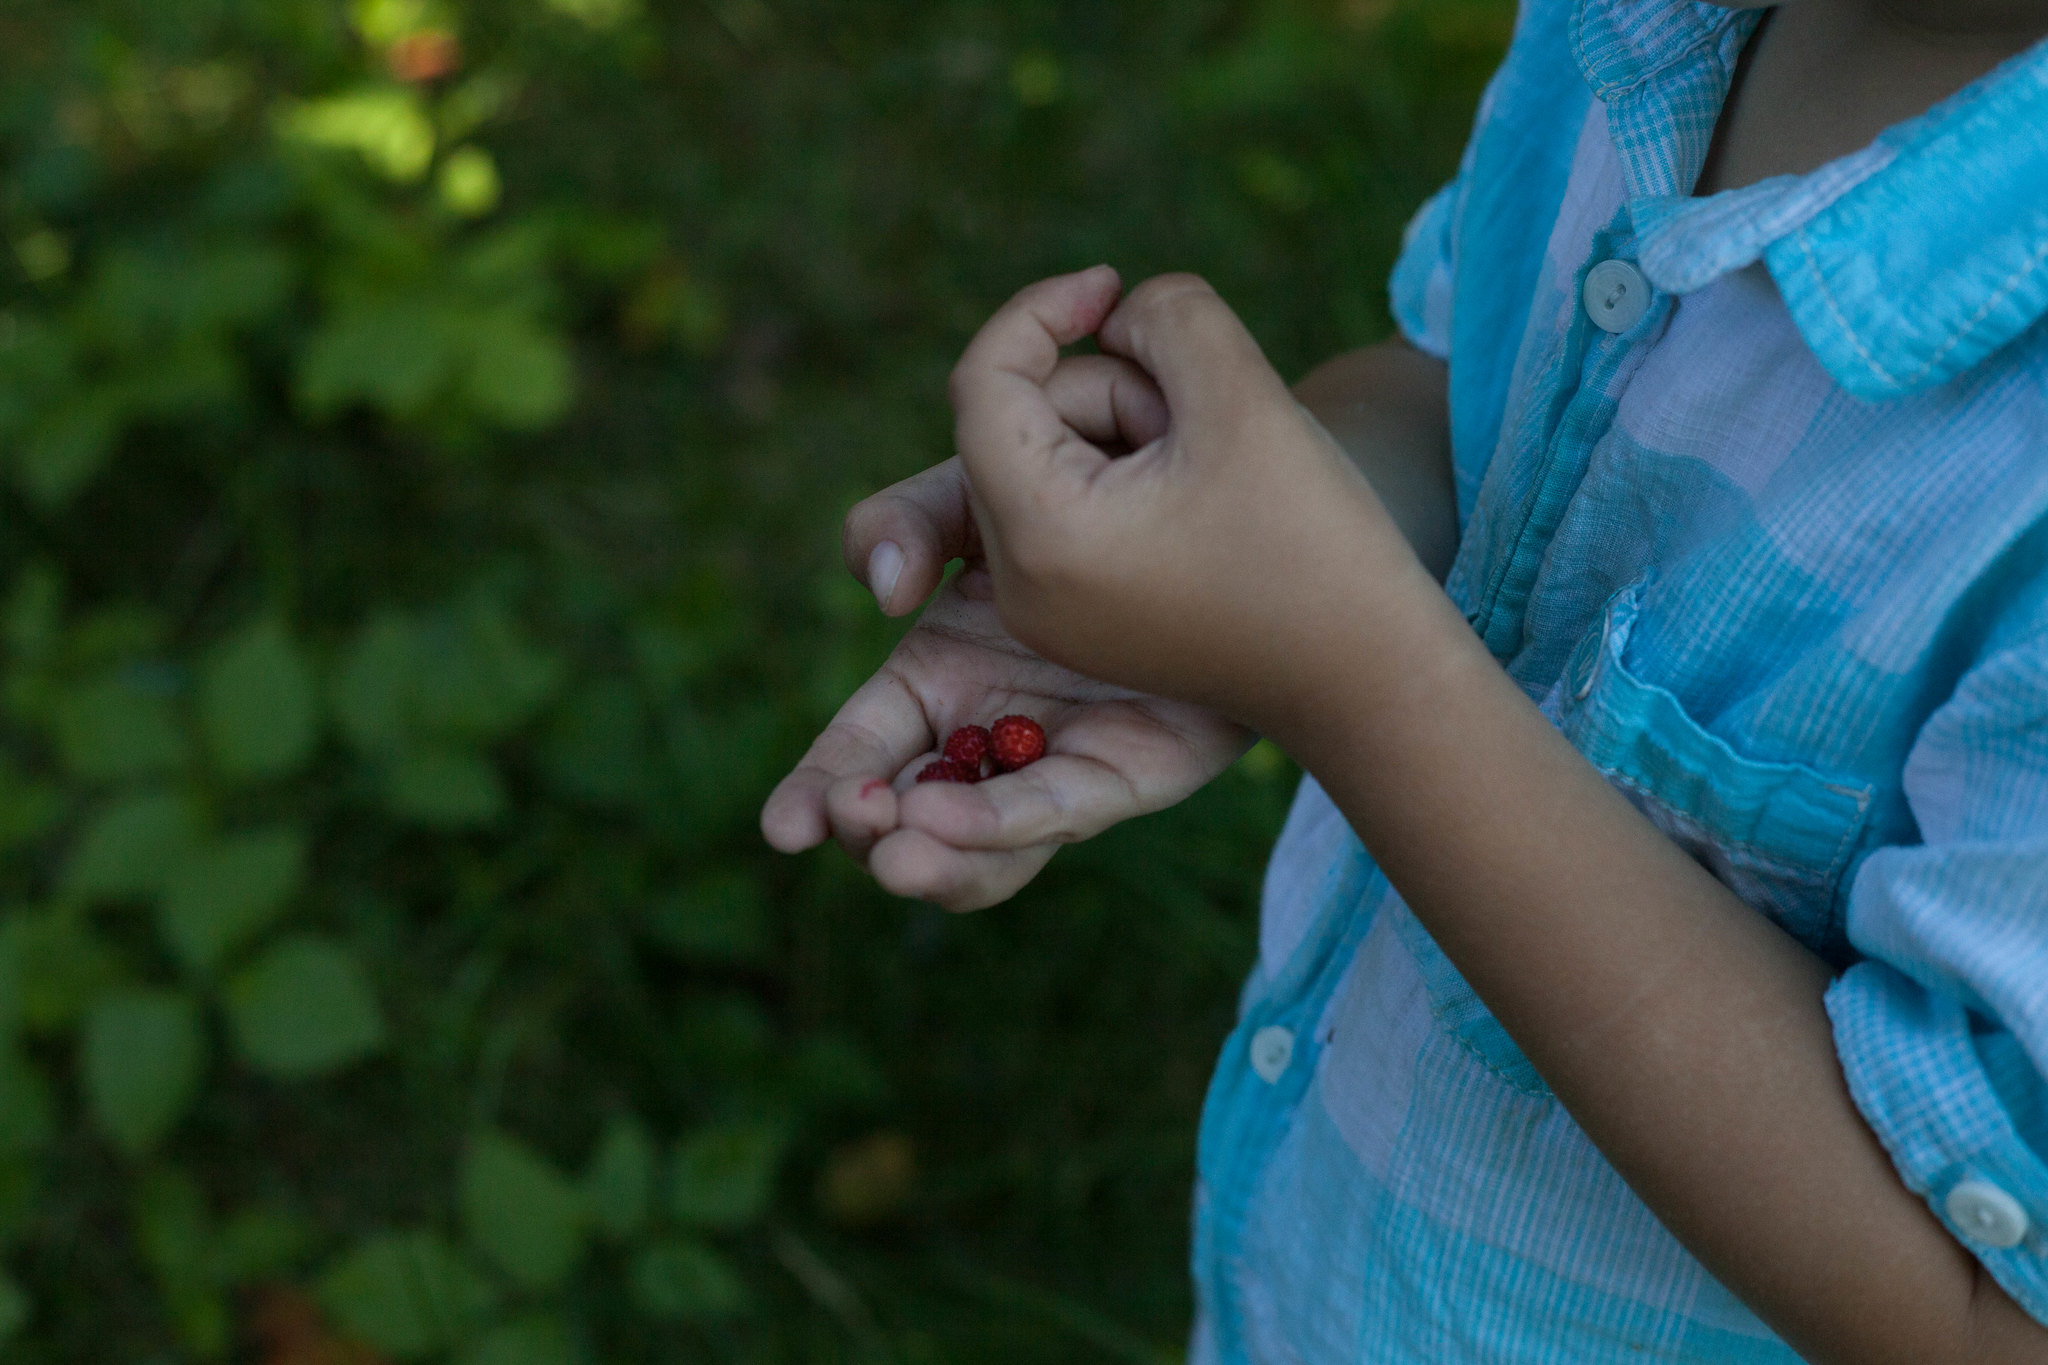 Picking wild strawberries